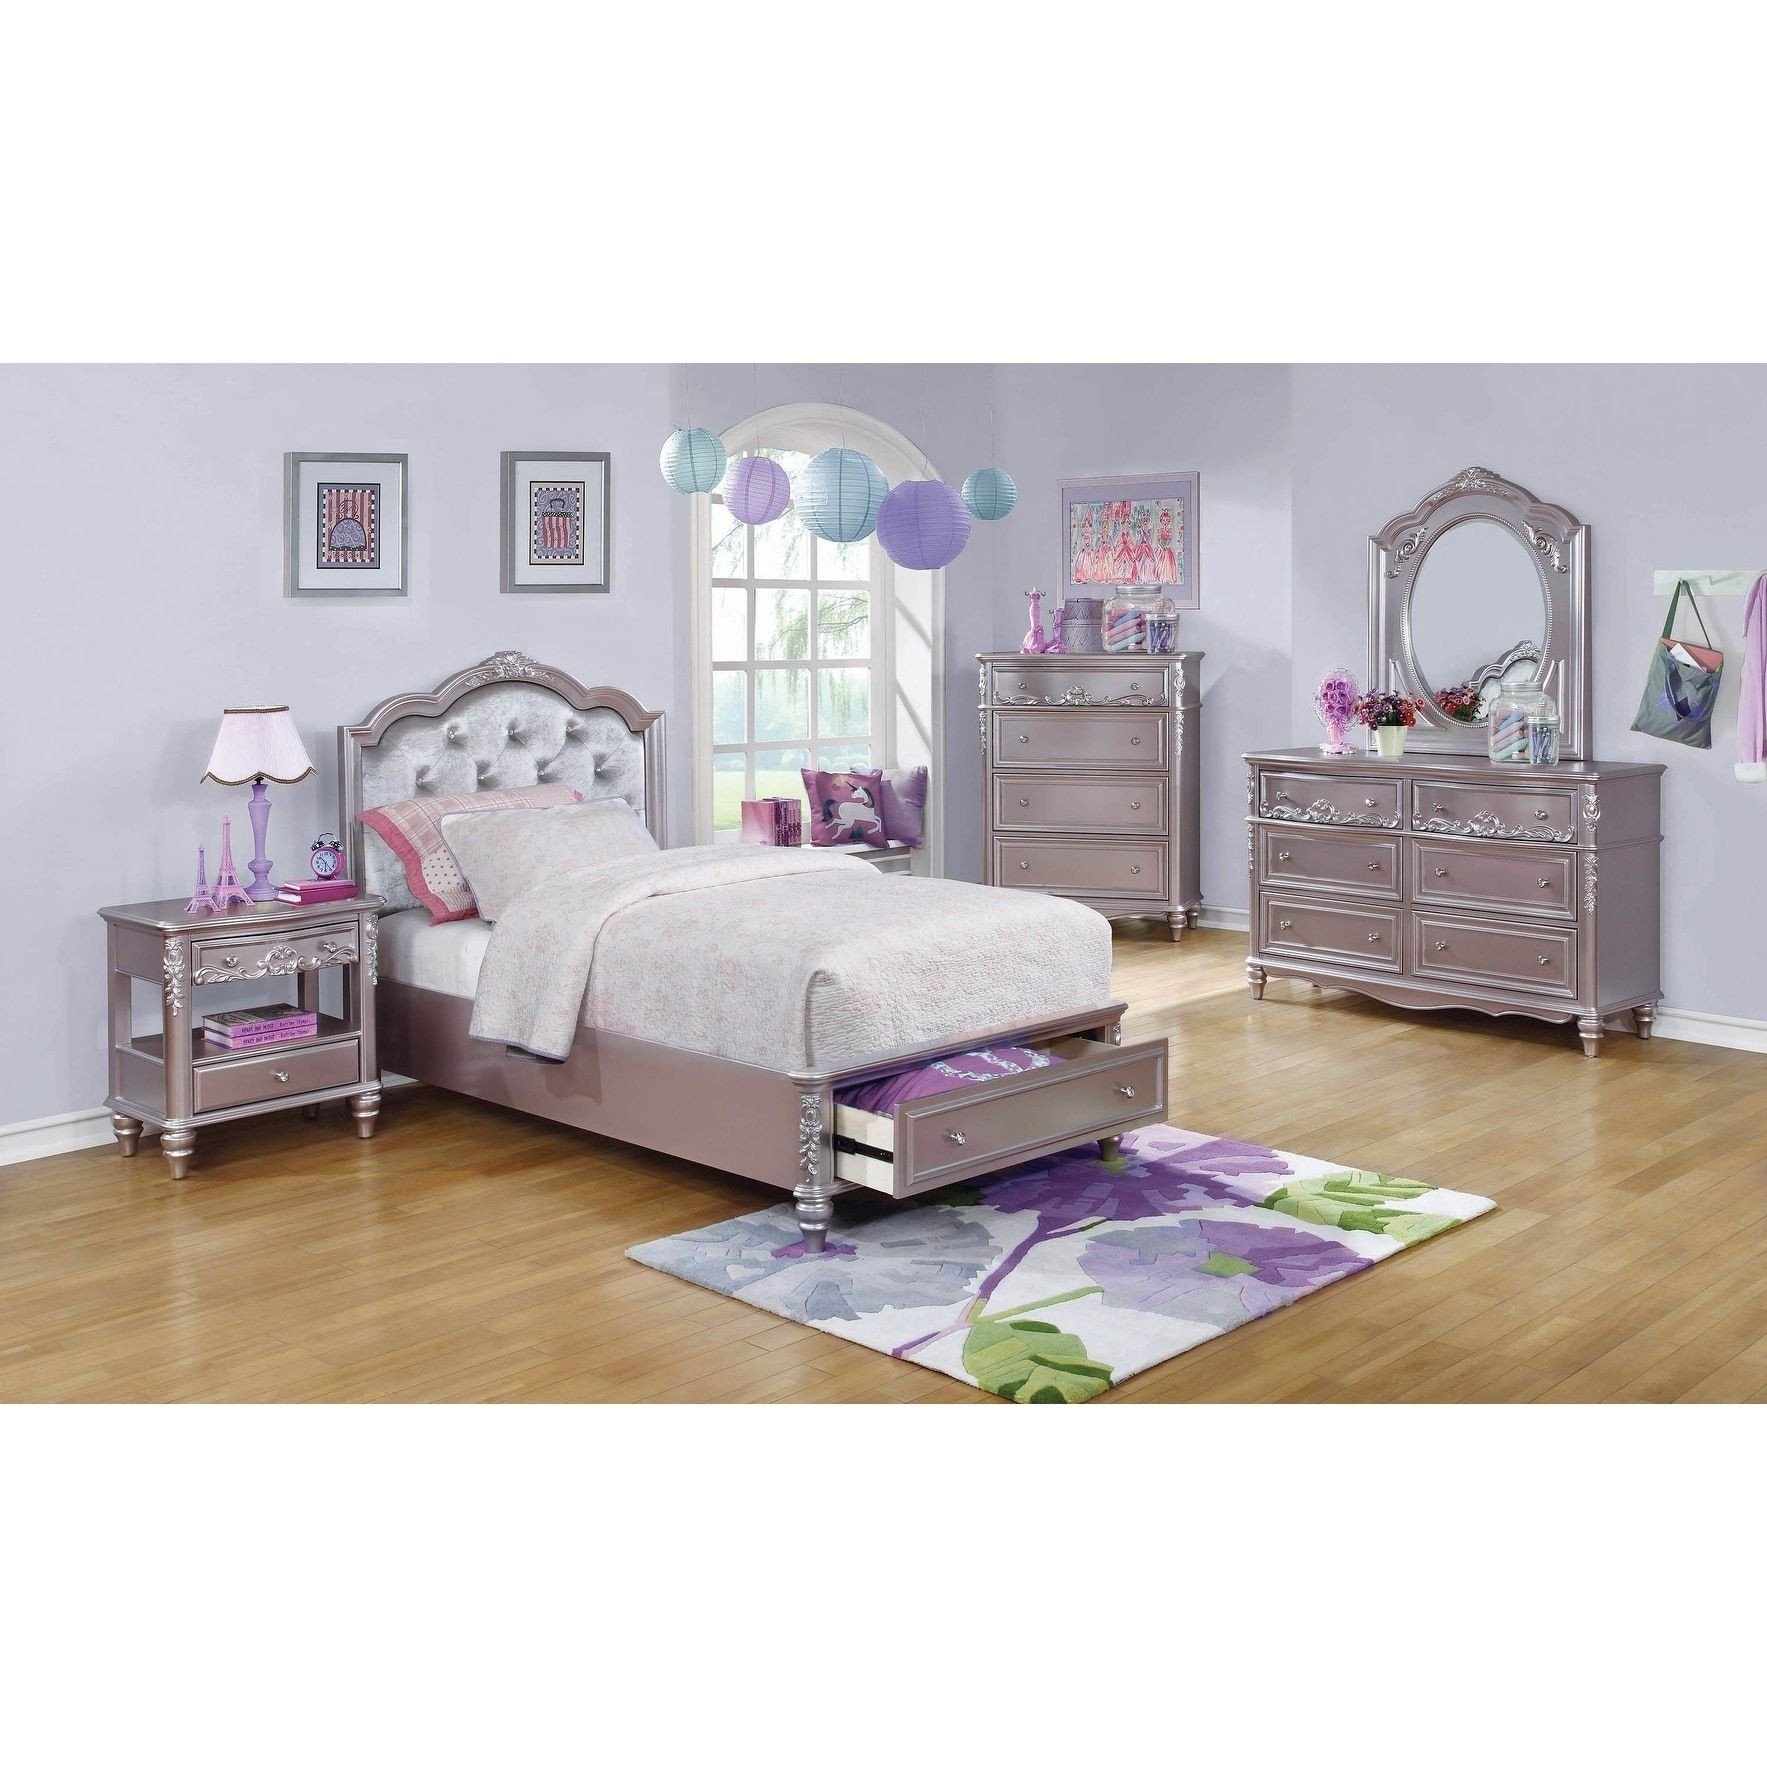 Cheap Twin Bedroom Set Beautiful Seraphina Metallic Lilac 4 Piece Bedroom Set with 2